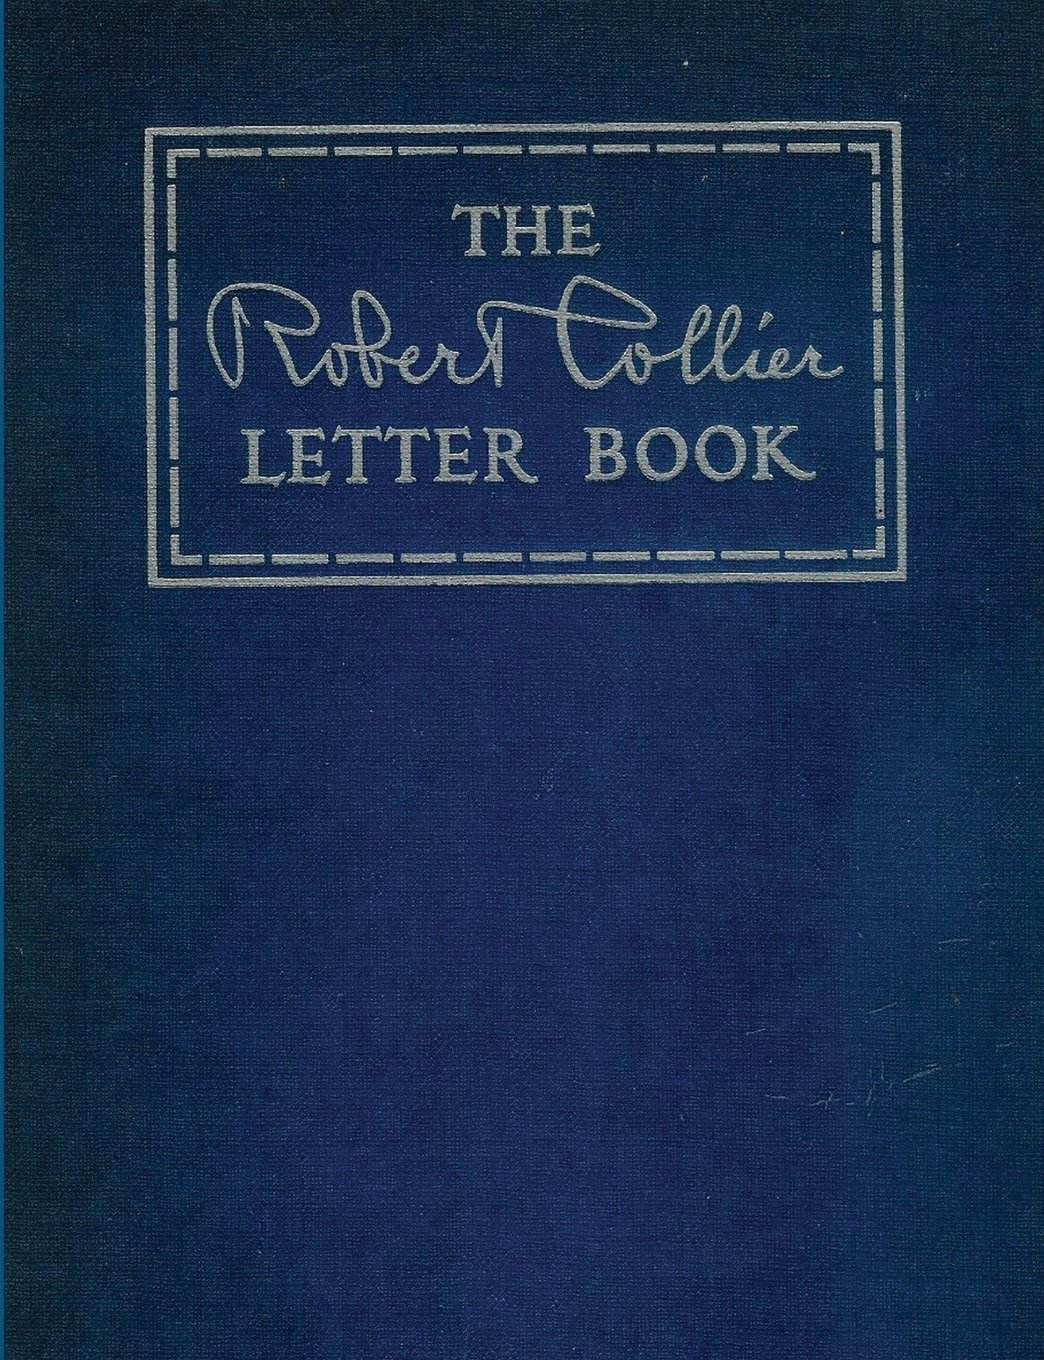 The Robert Collier Letter Book: Robert Collier: 9788087830673